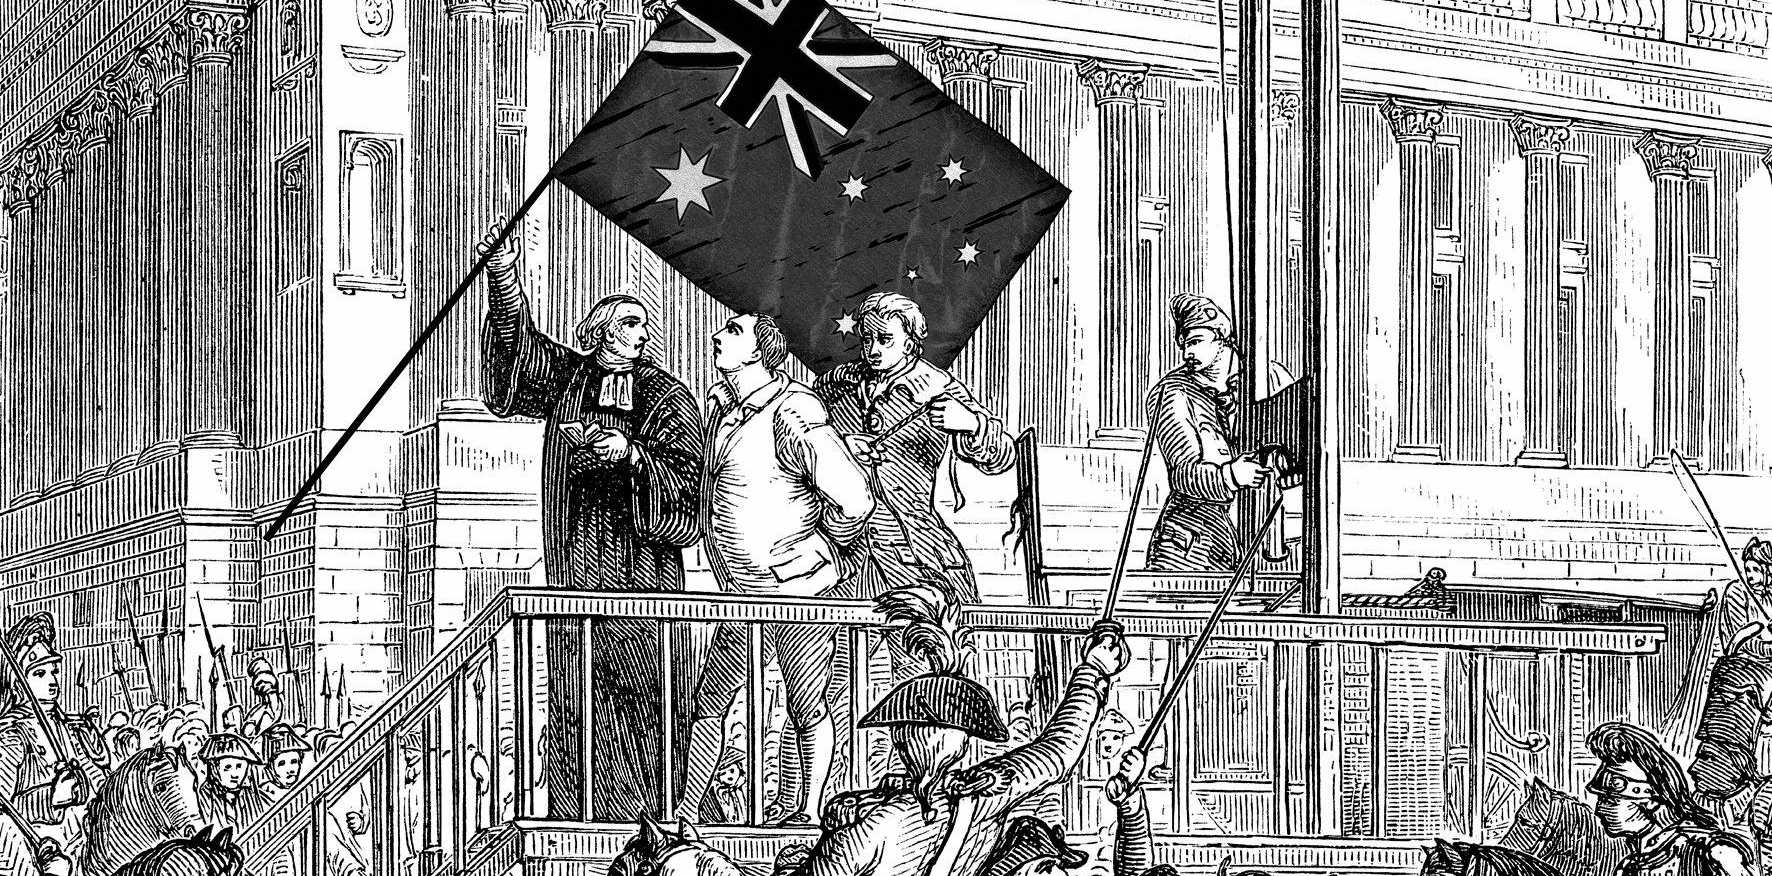 An illustration showing the execution by guillotine of King Louis XVI during the French Revolution.